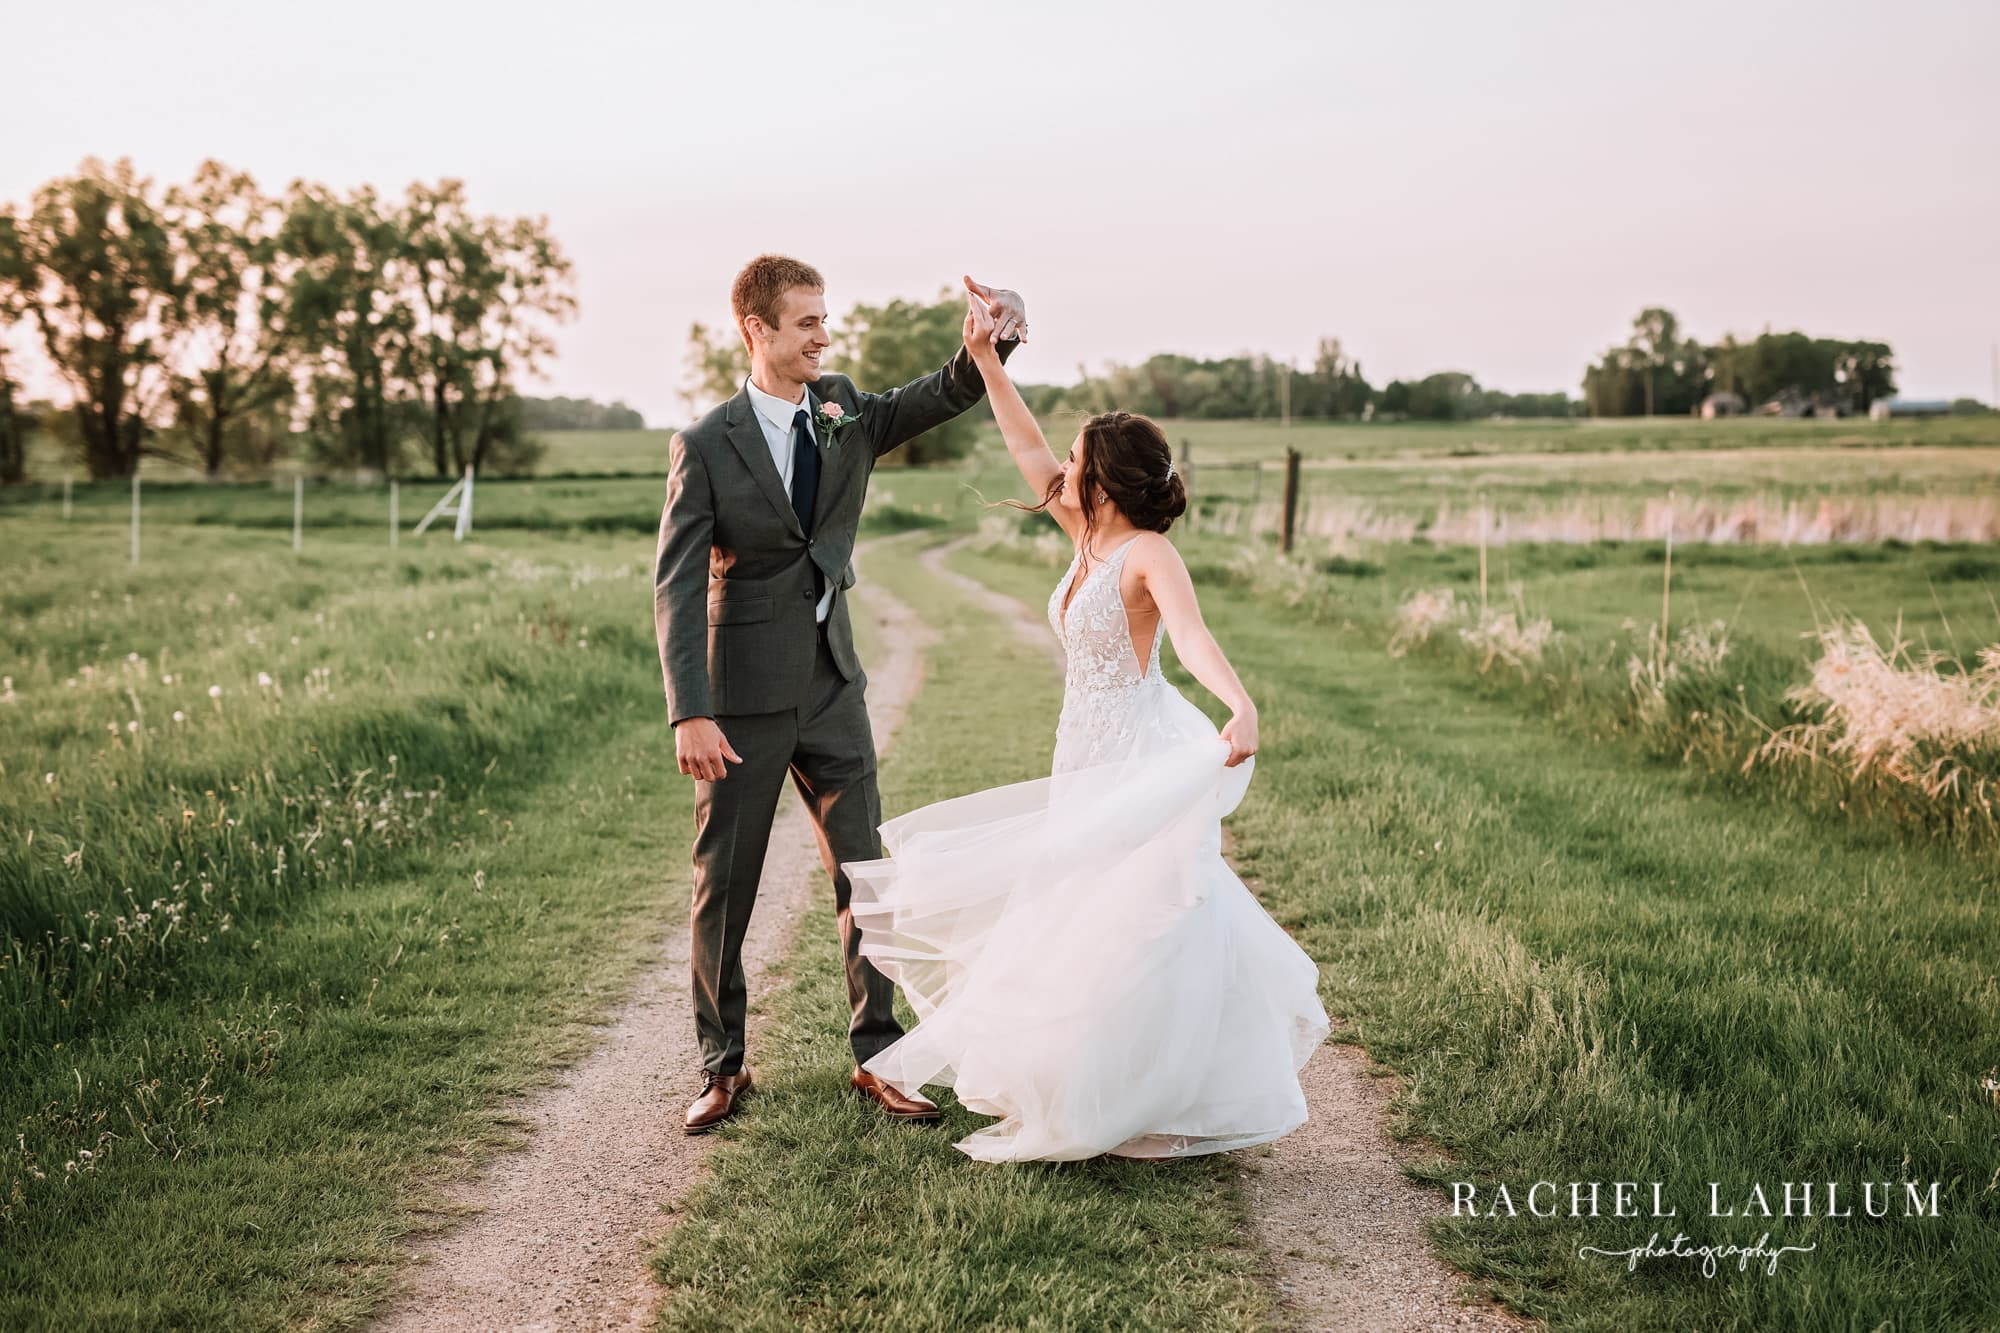 Groom twirls bride on dirt road by The Cottage Farmhouse in Glencoe, MN.